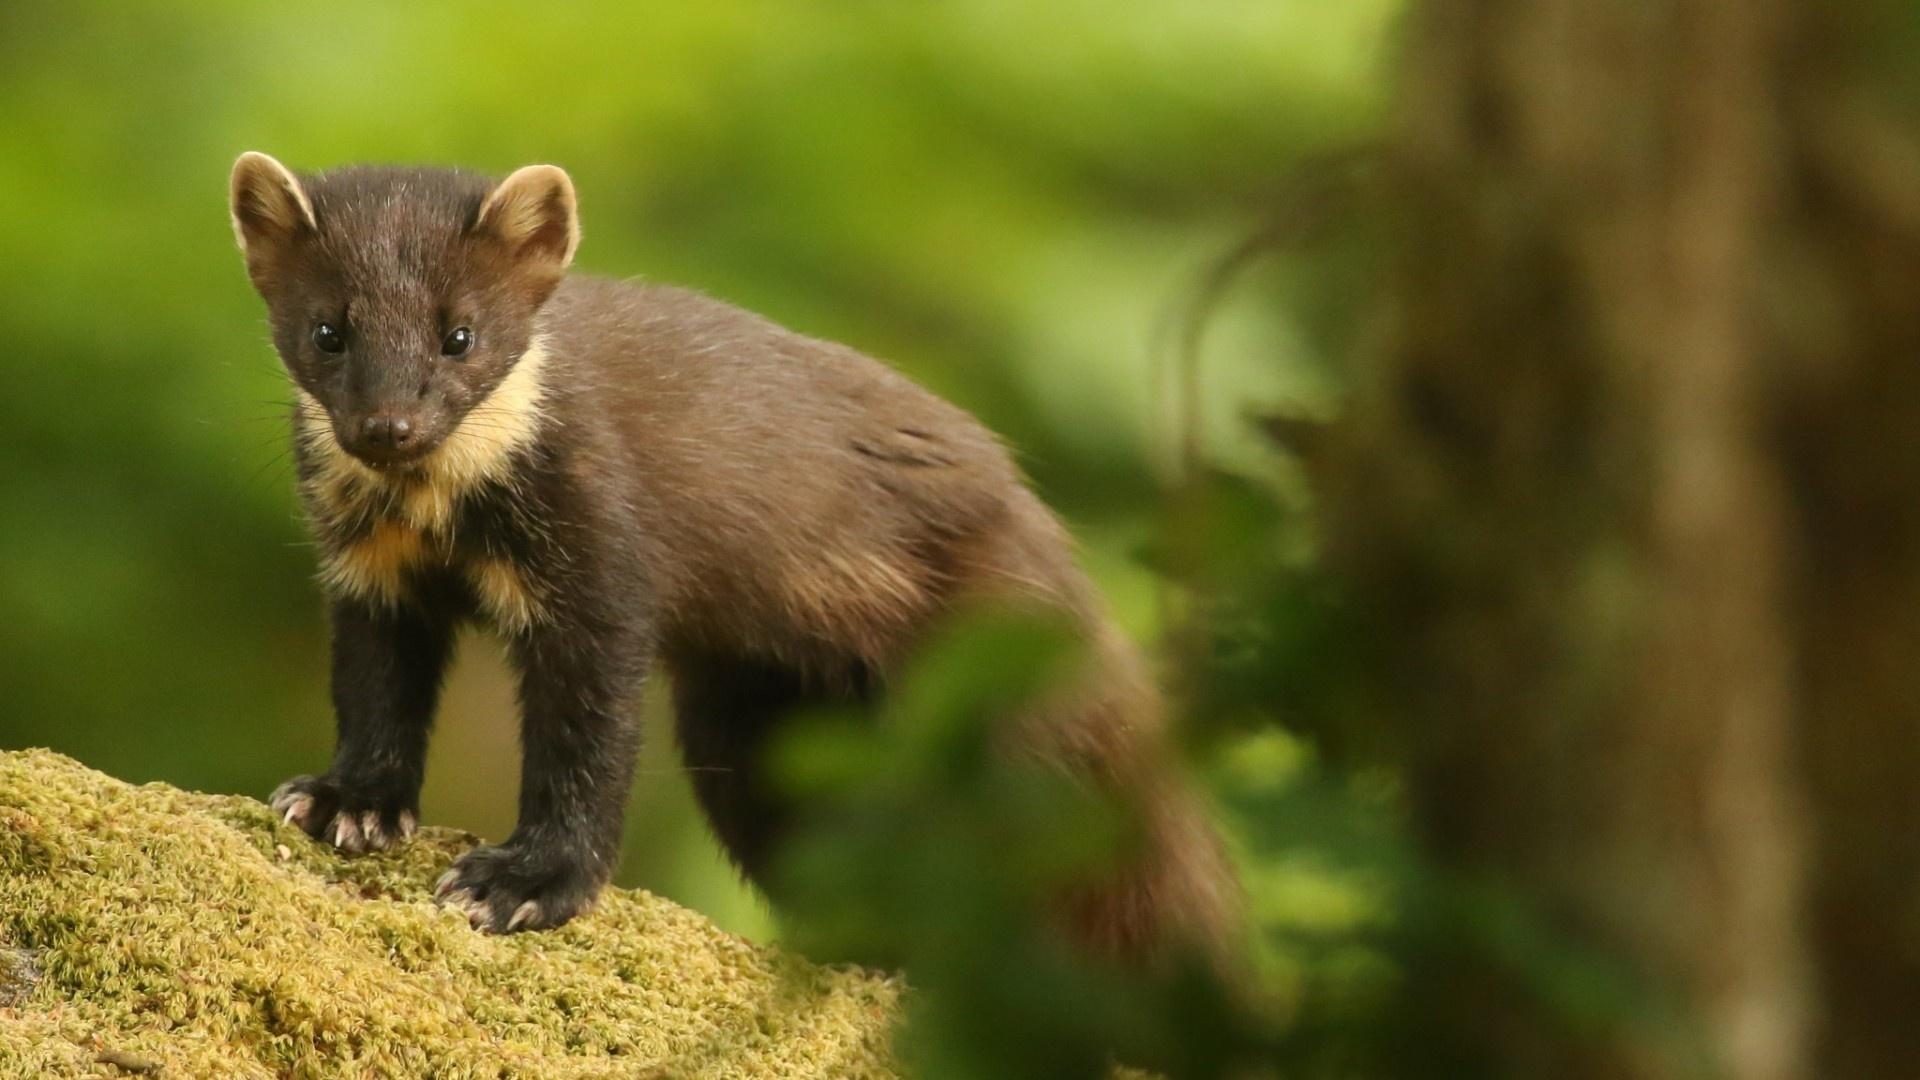 Marten wallpaper photo hd